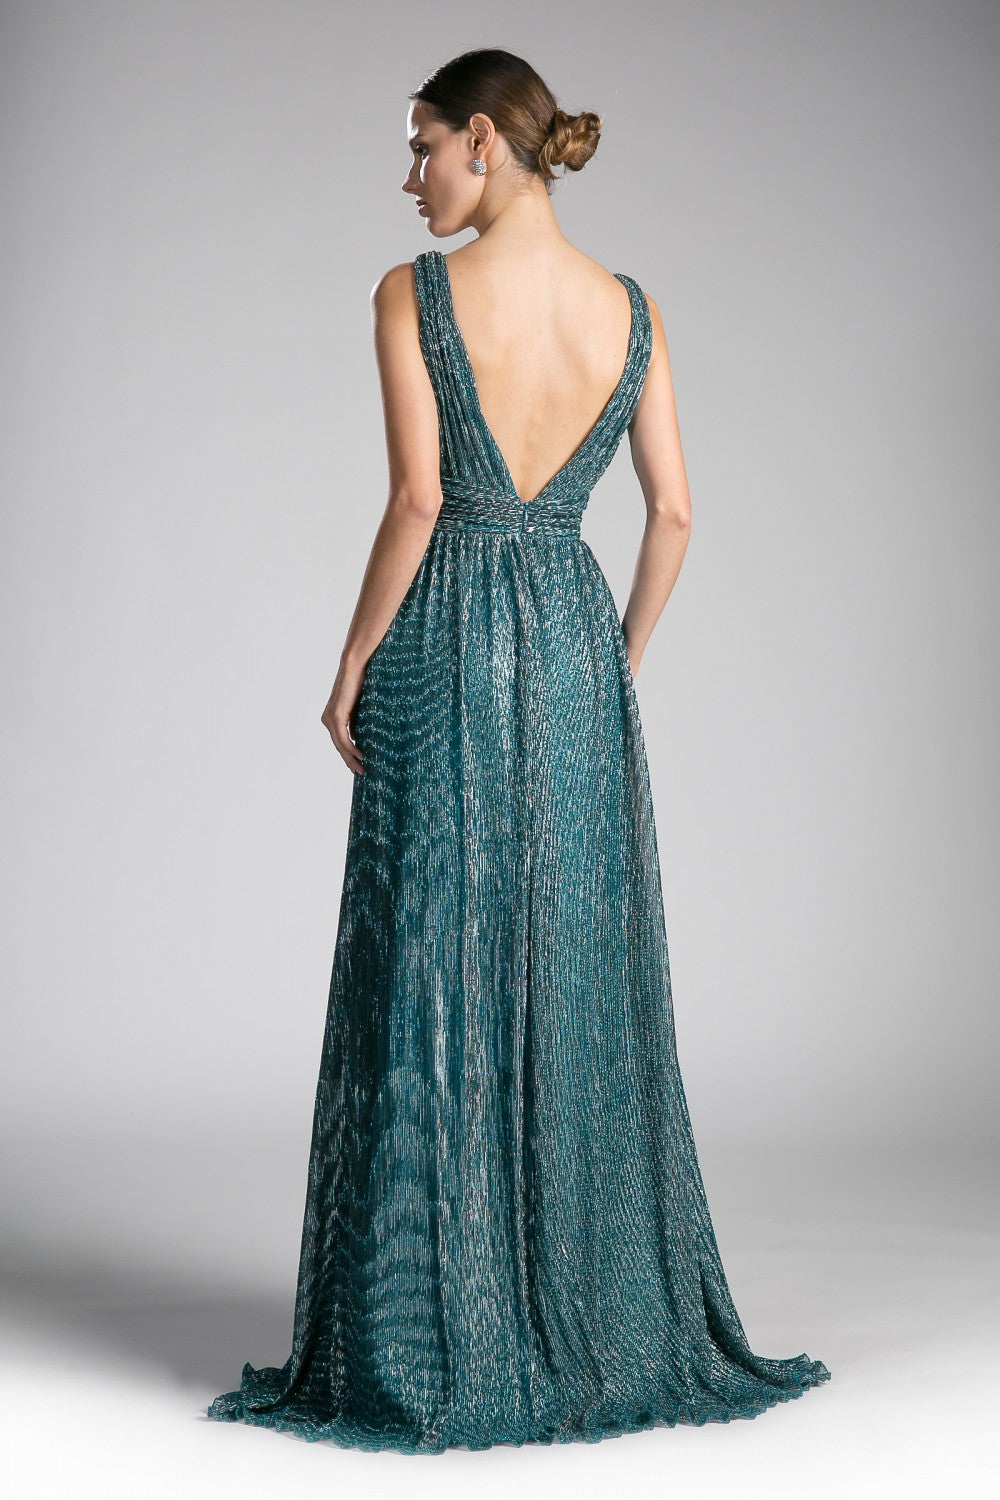 A-Line Metallic Knit Gown With Gathered Waistband And Open Back